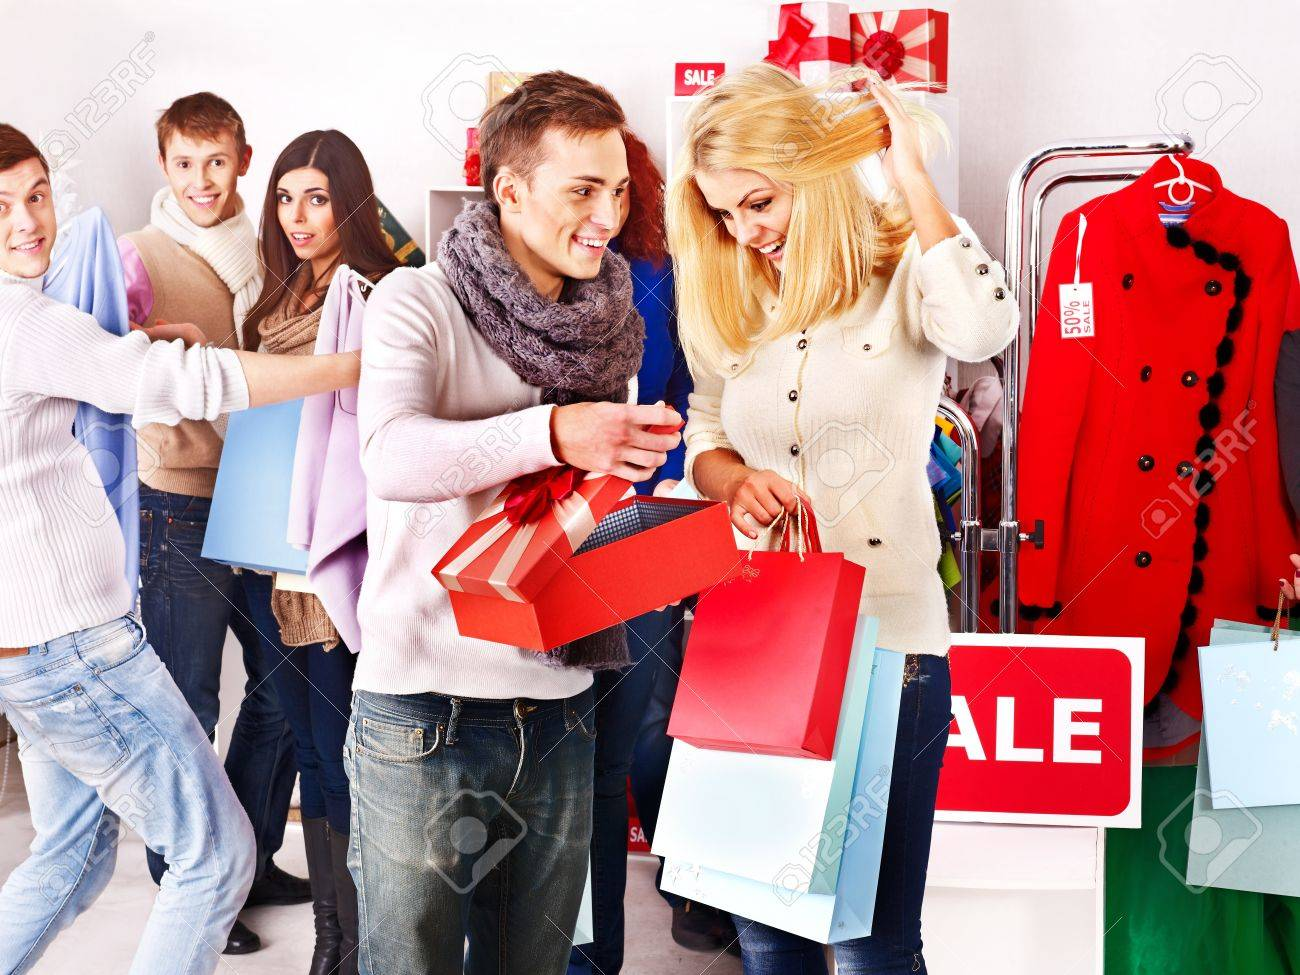 6198276656 Shopping group people at sales in clothing store. Stock Photo - 16354631